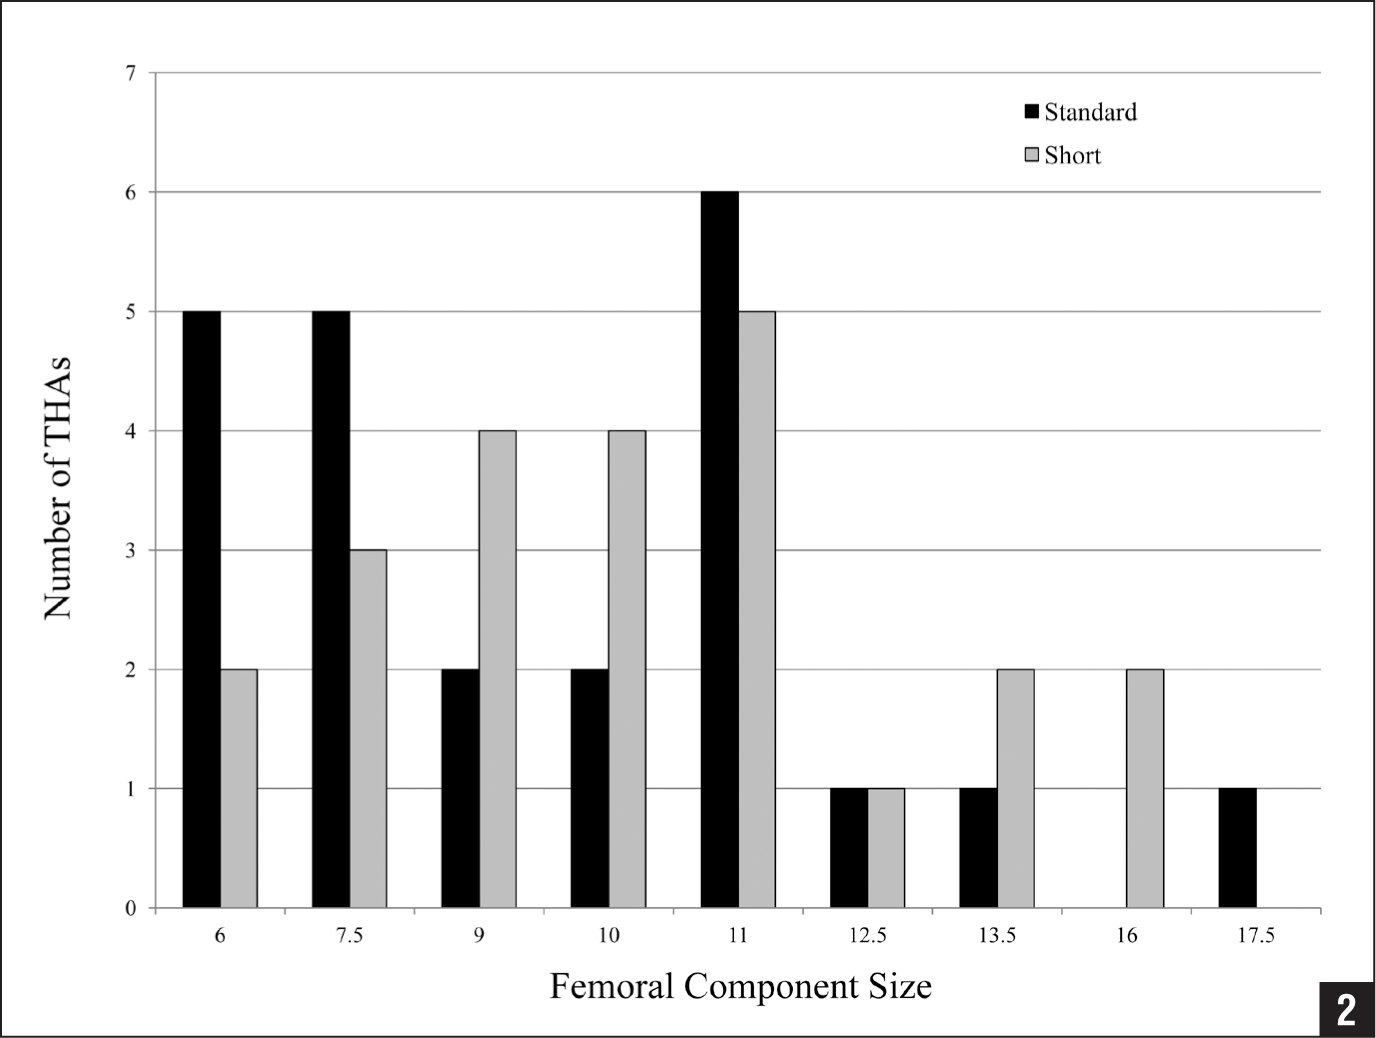 Distribution of femoral component sizes for the group of 23 patients treated with 1 standard-length tapered femoral component and 1 contralateral shortened component. Abbreviation: THAs, total hip arthroplasties.